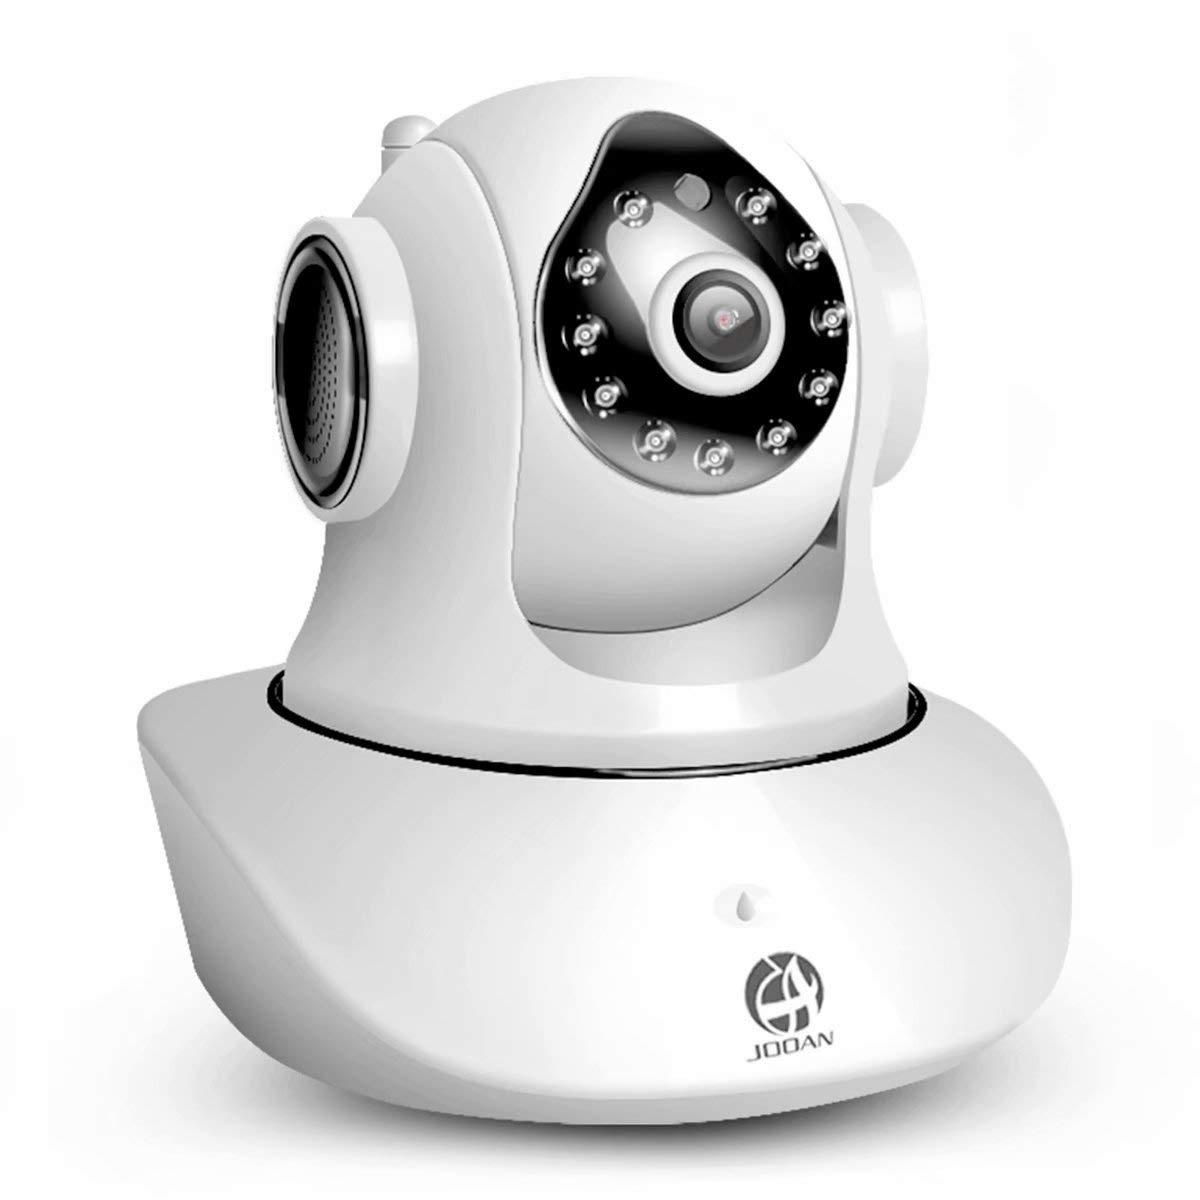 JOOAN IP Camera HD 720P Network Wireless Camera Remote Monitoring Security Camera with Two-Way Audio(Danale APP)